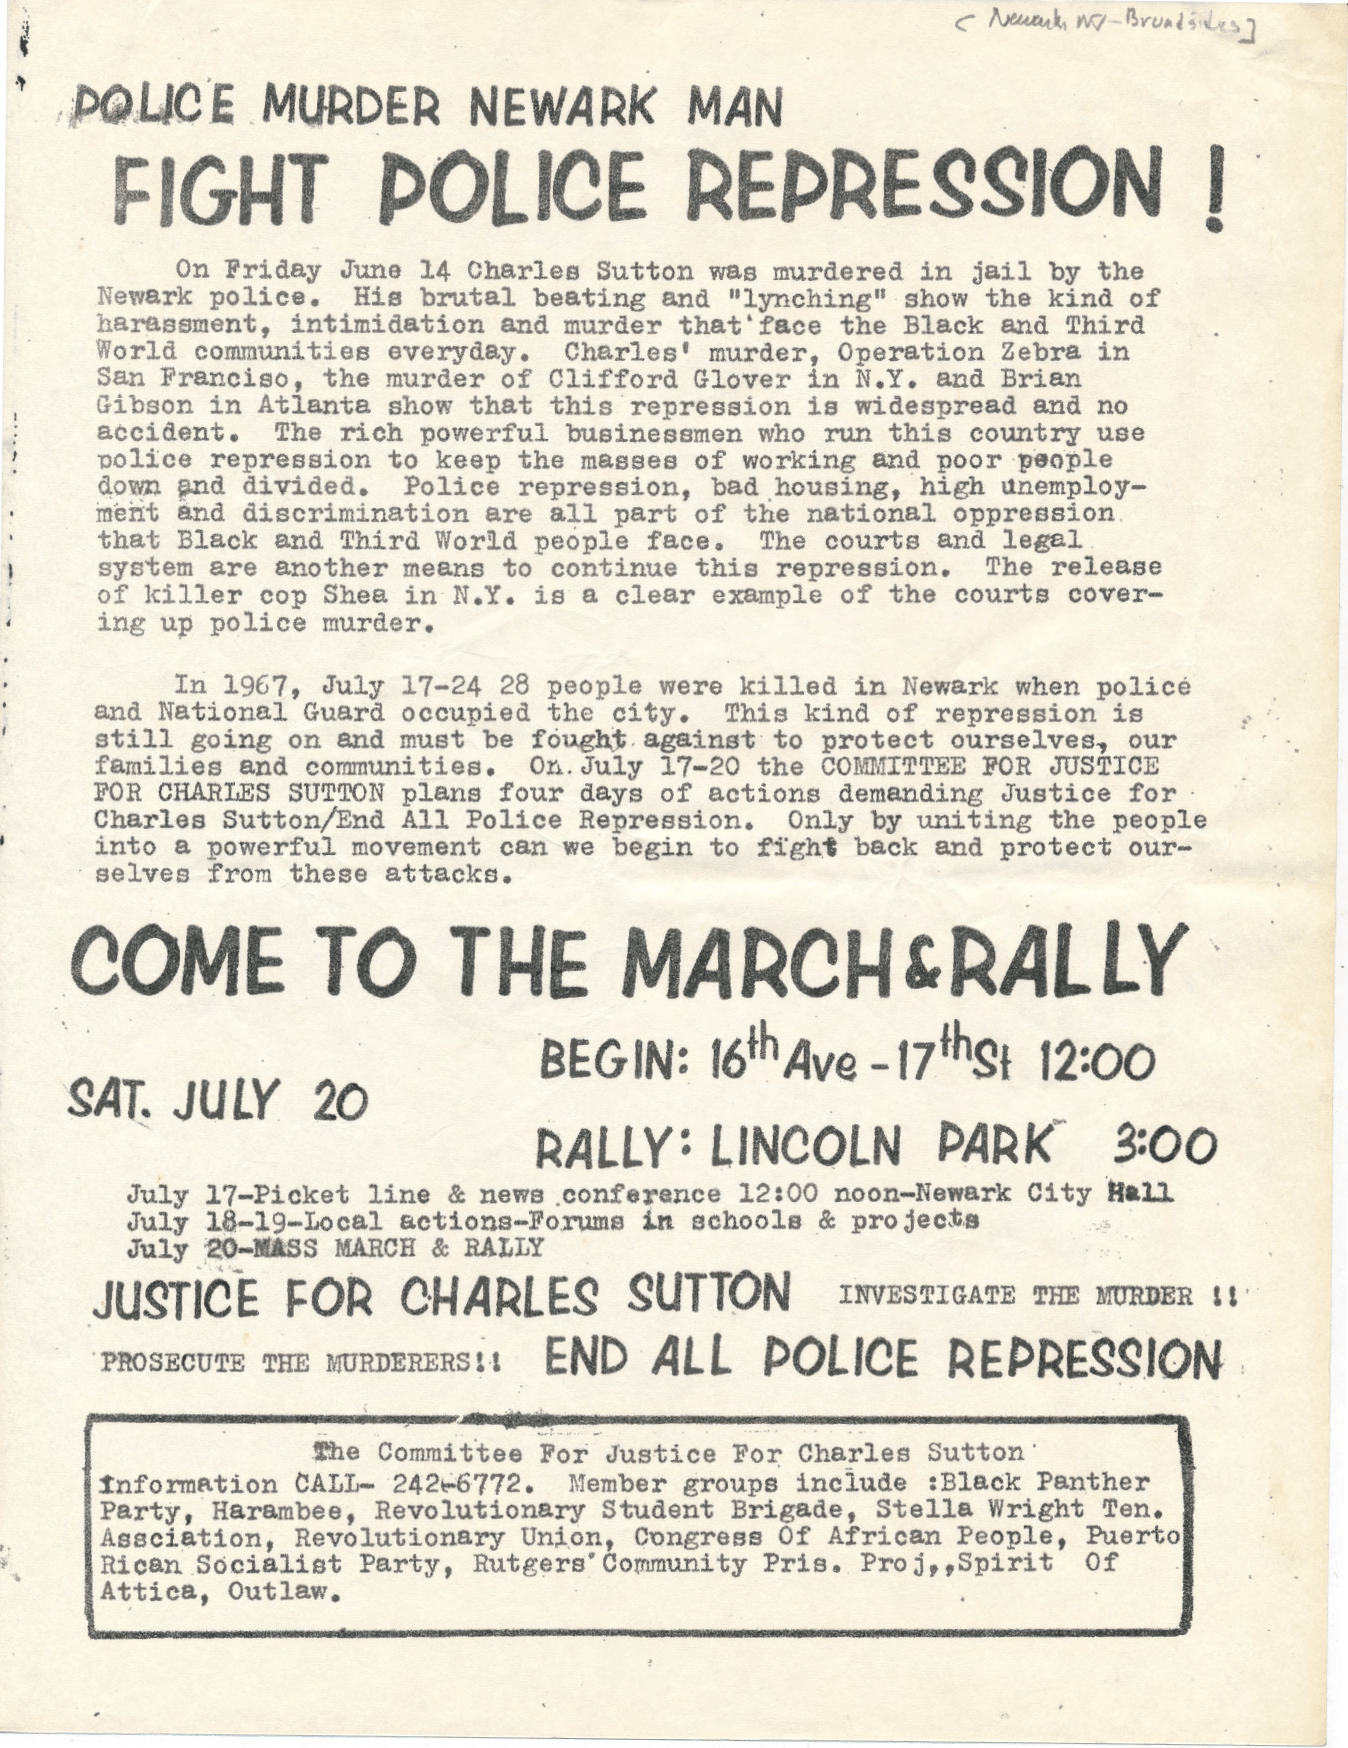 Flyer for Charles Sutton Rally (1974)